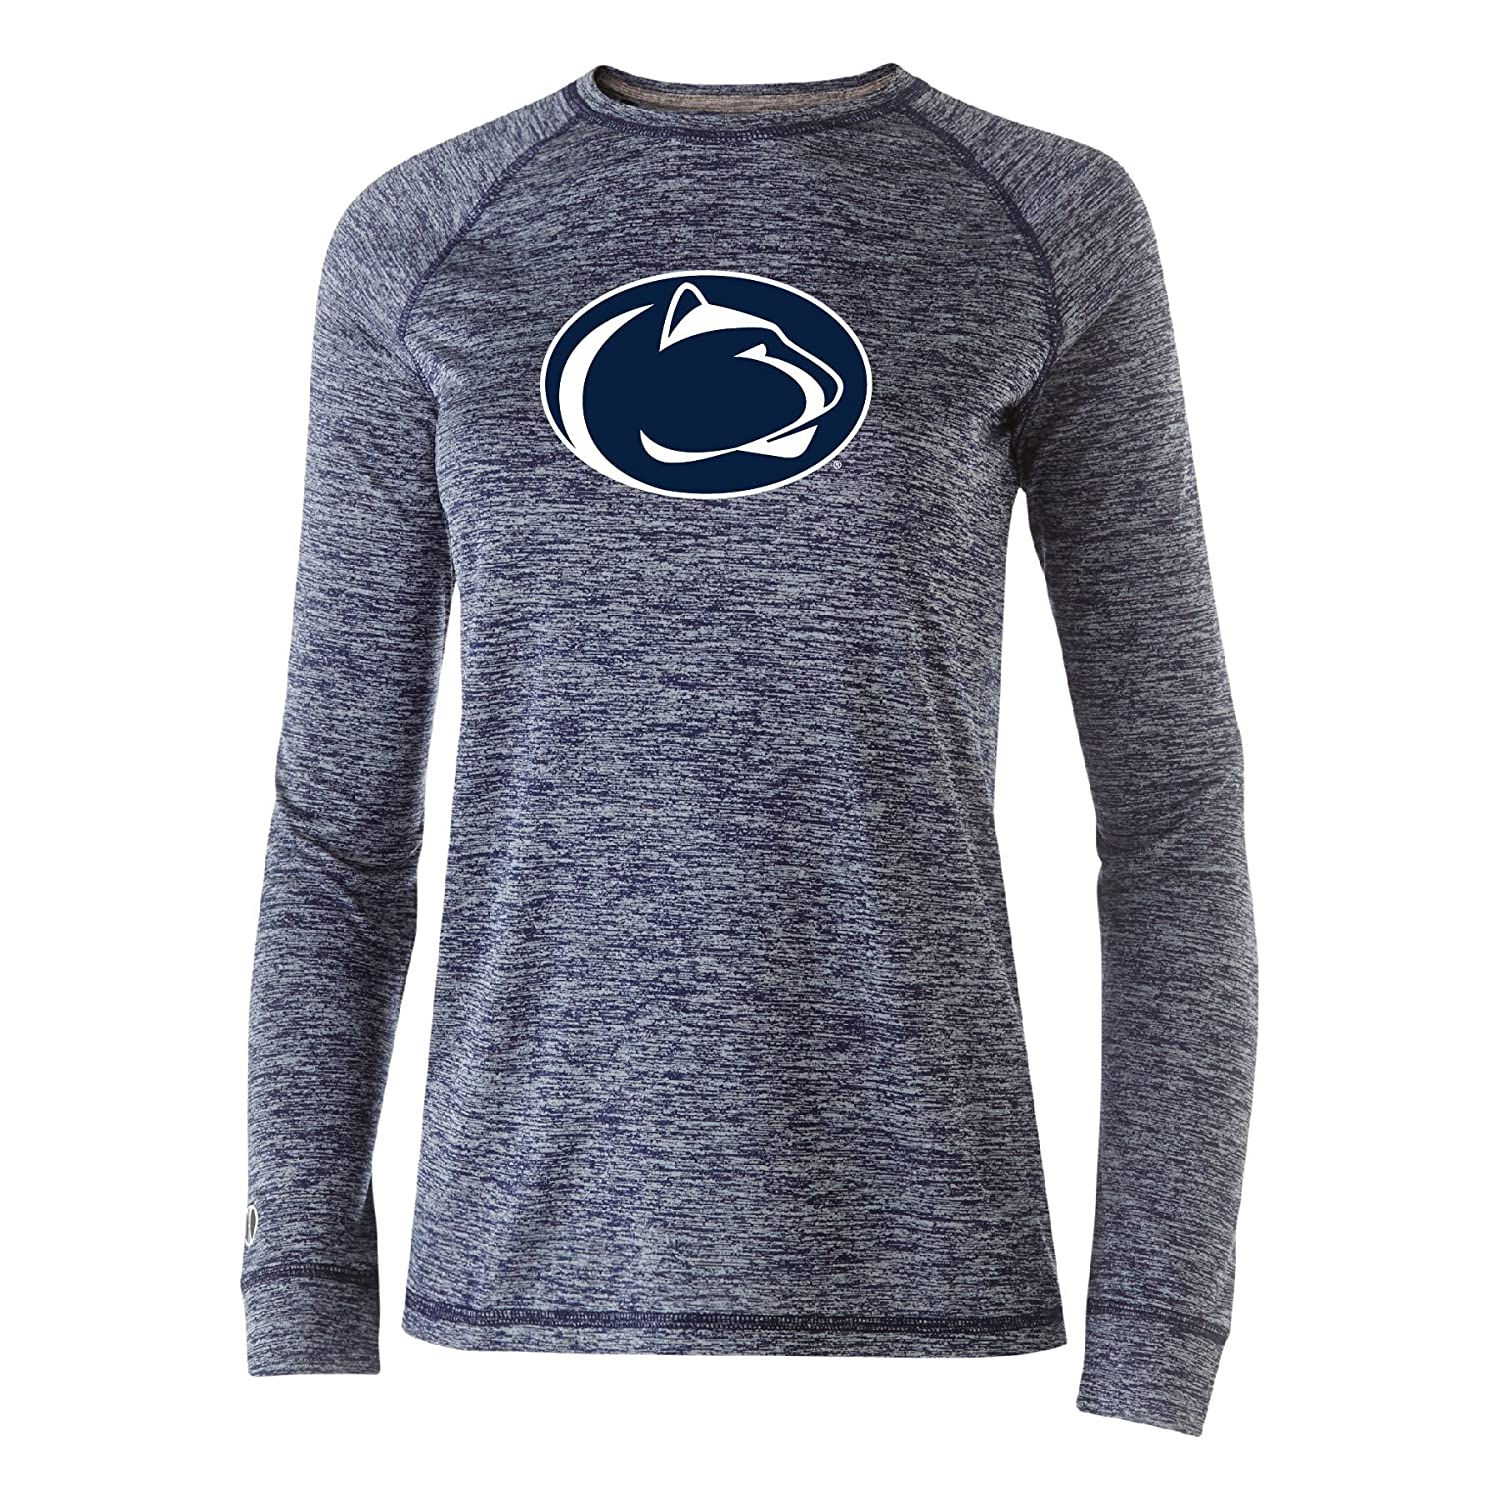 Ouray Sportswear NCAA Penn State Nittany Lions Adult Women Holloway W ls Electrify 2.0 X-Large Navy Heather